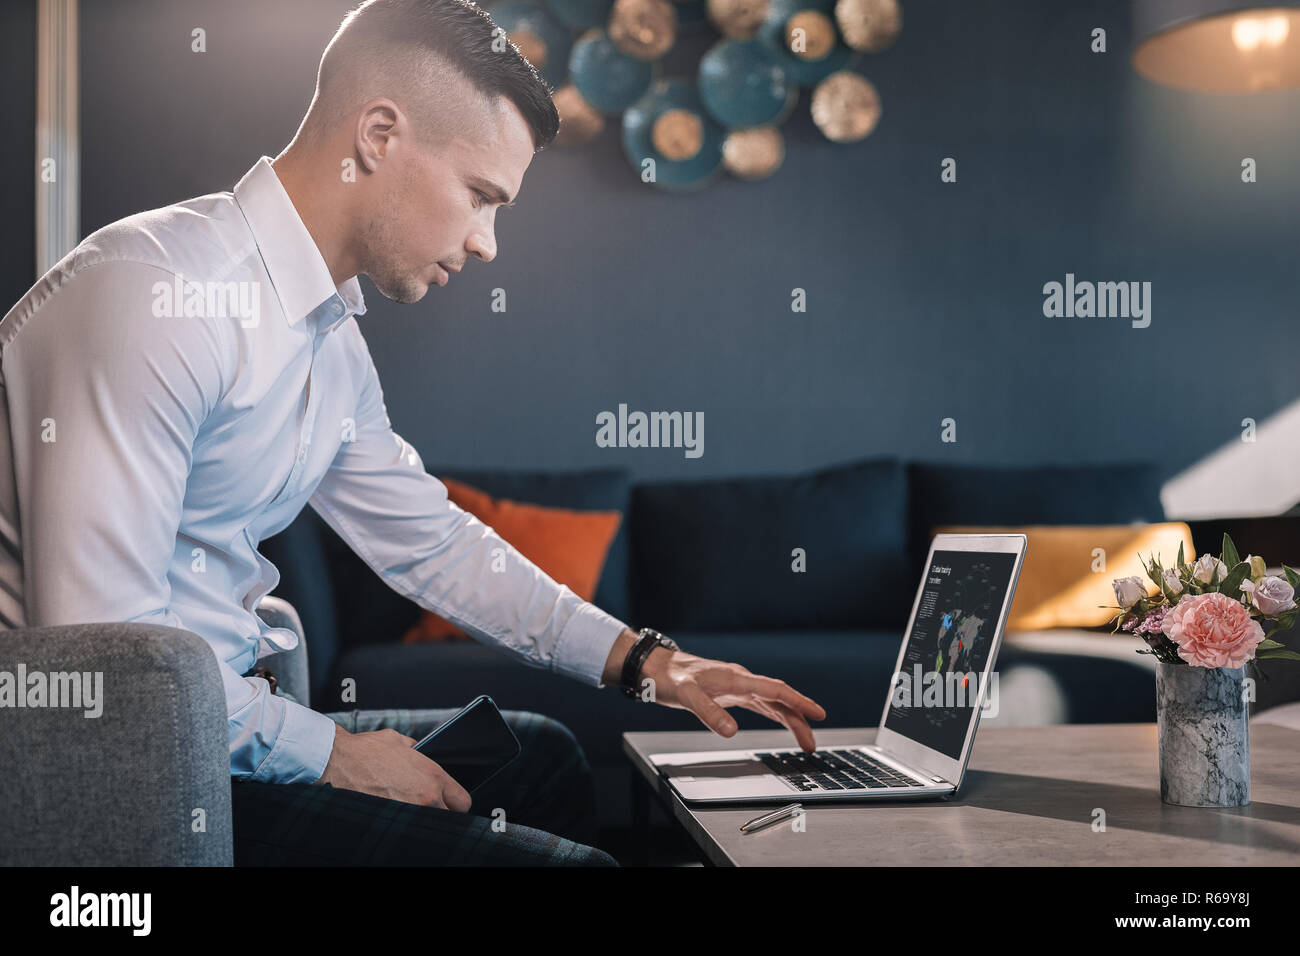 Usage Agreement Stock Photos Usage Agreement Stock Images Alamy